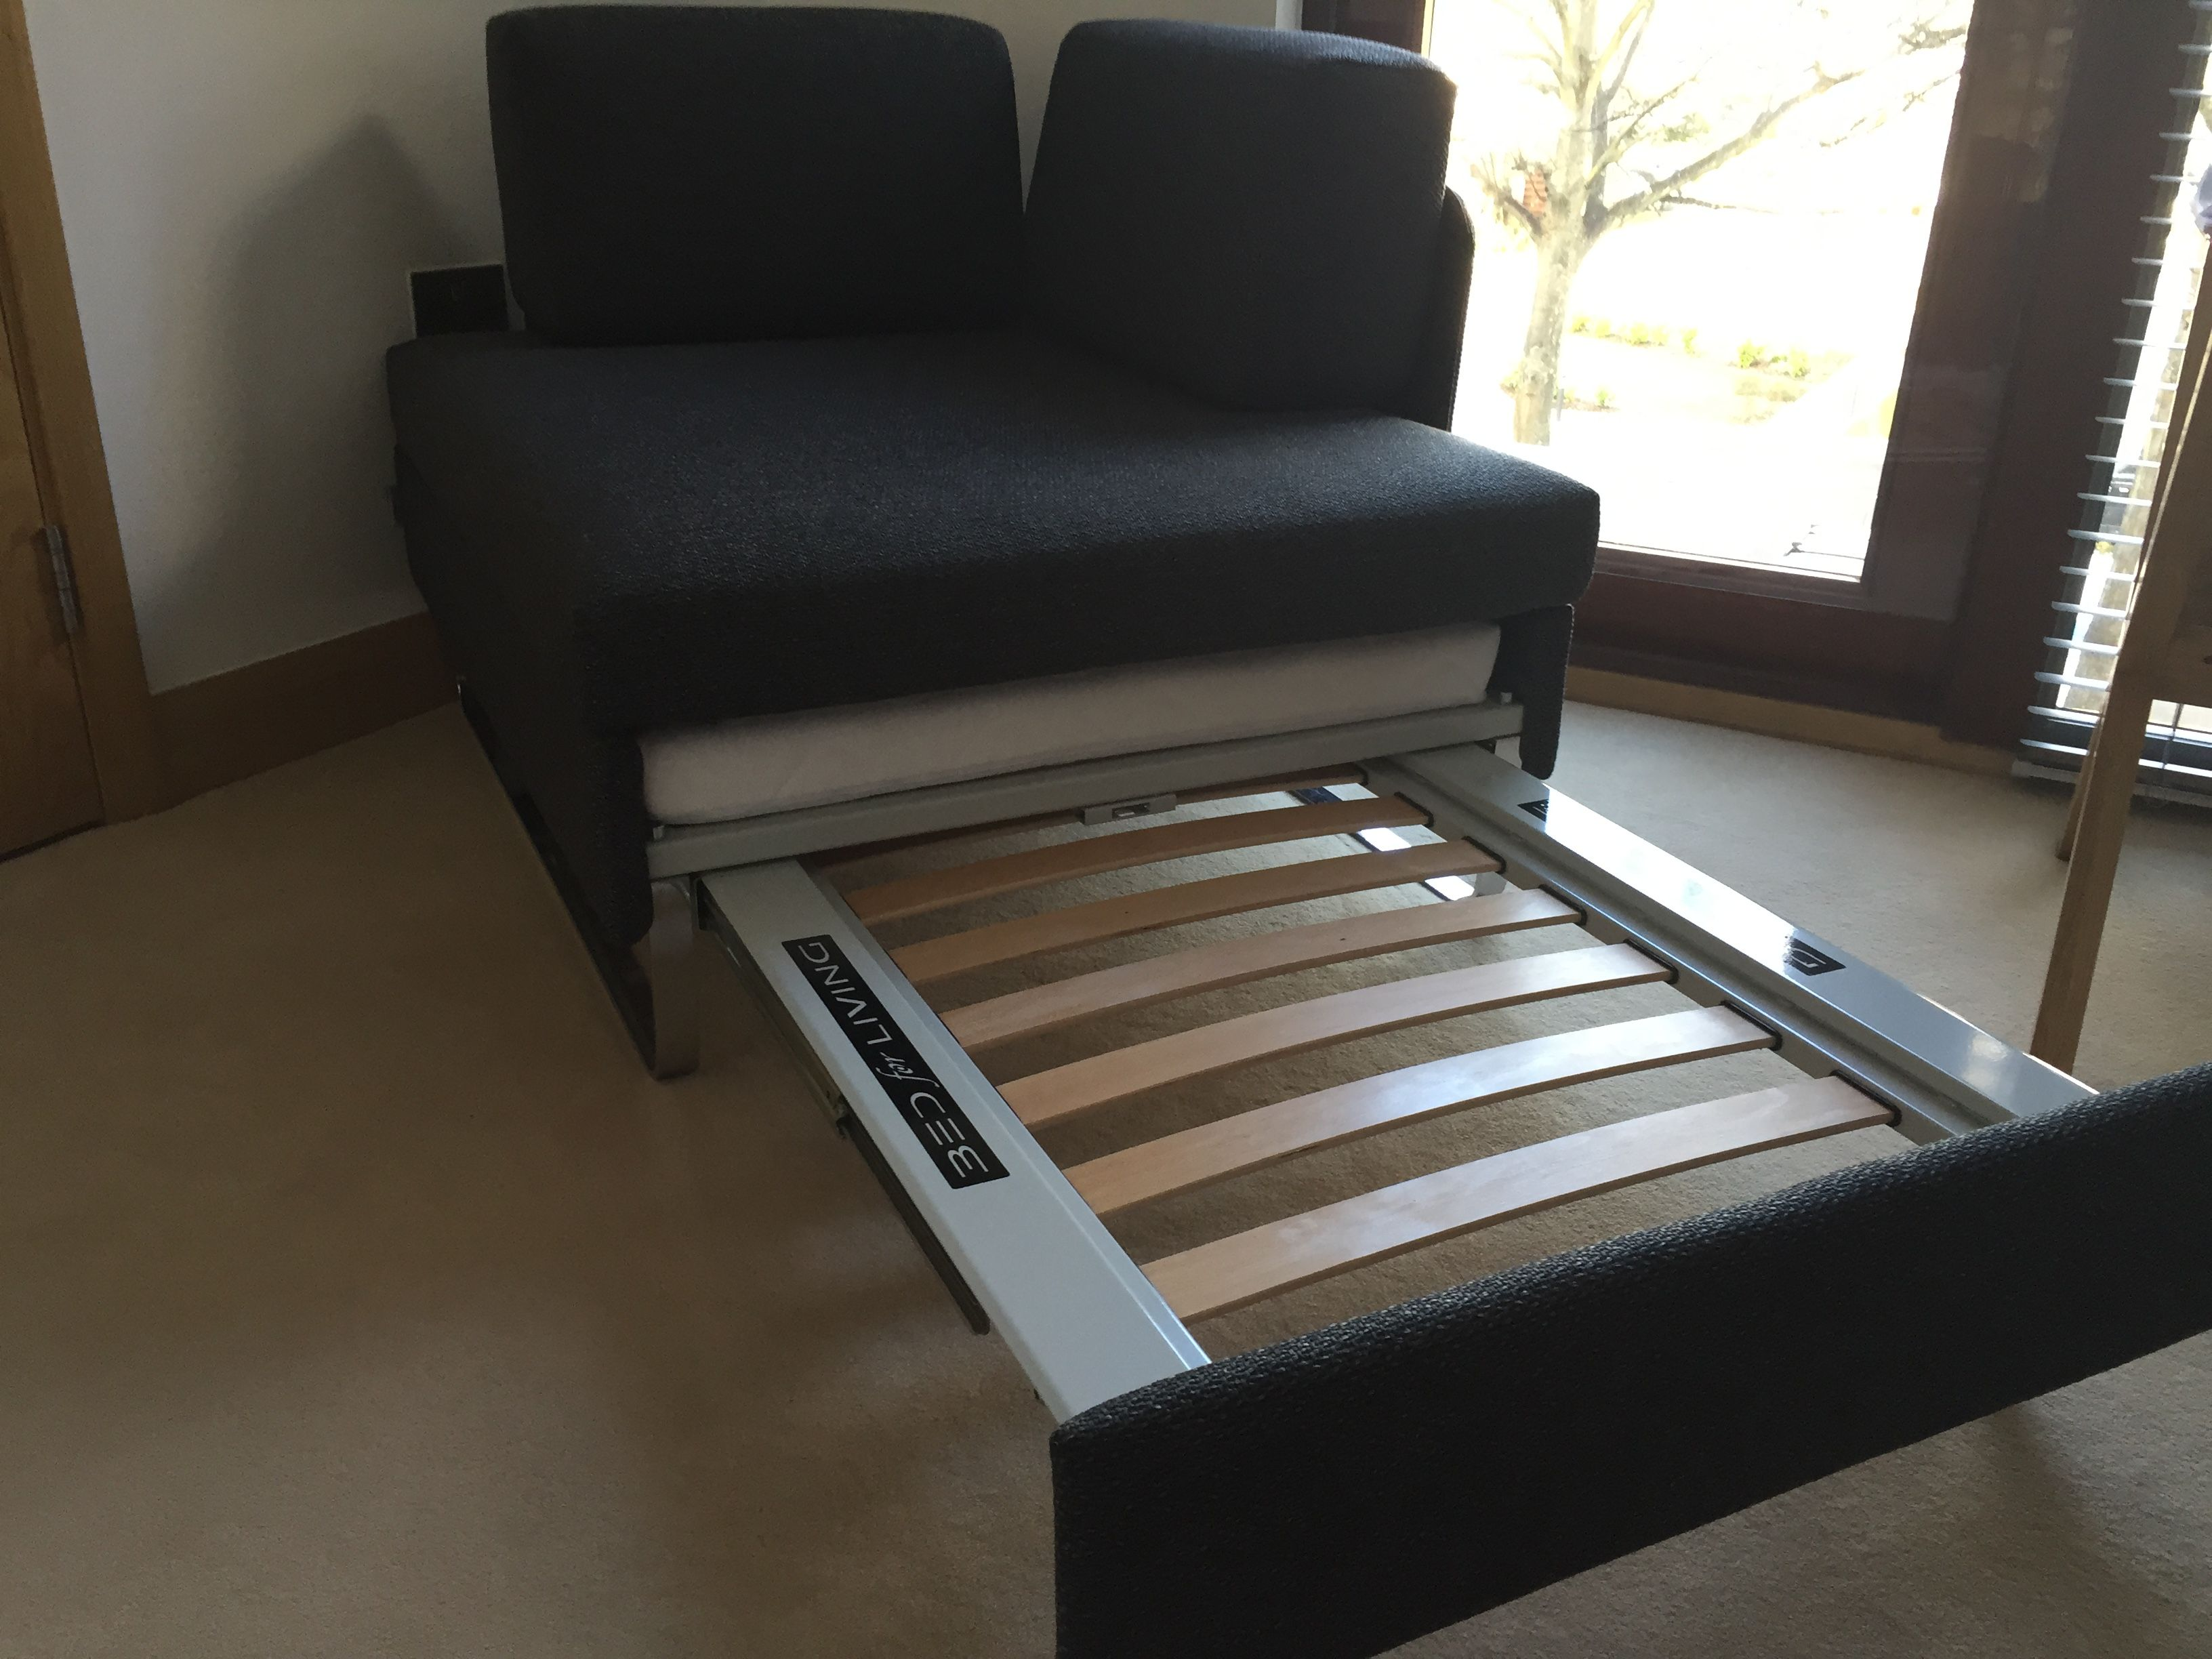 Hocker single chair bed, for all the time use. Any fabric